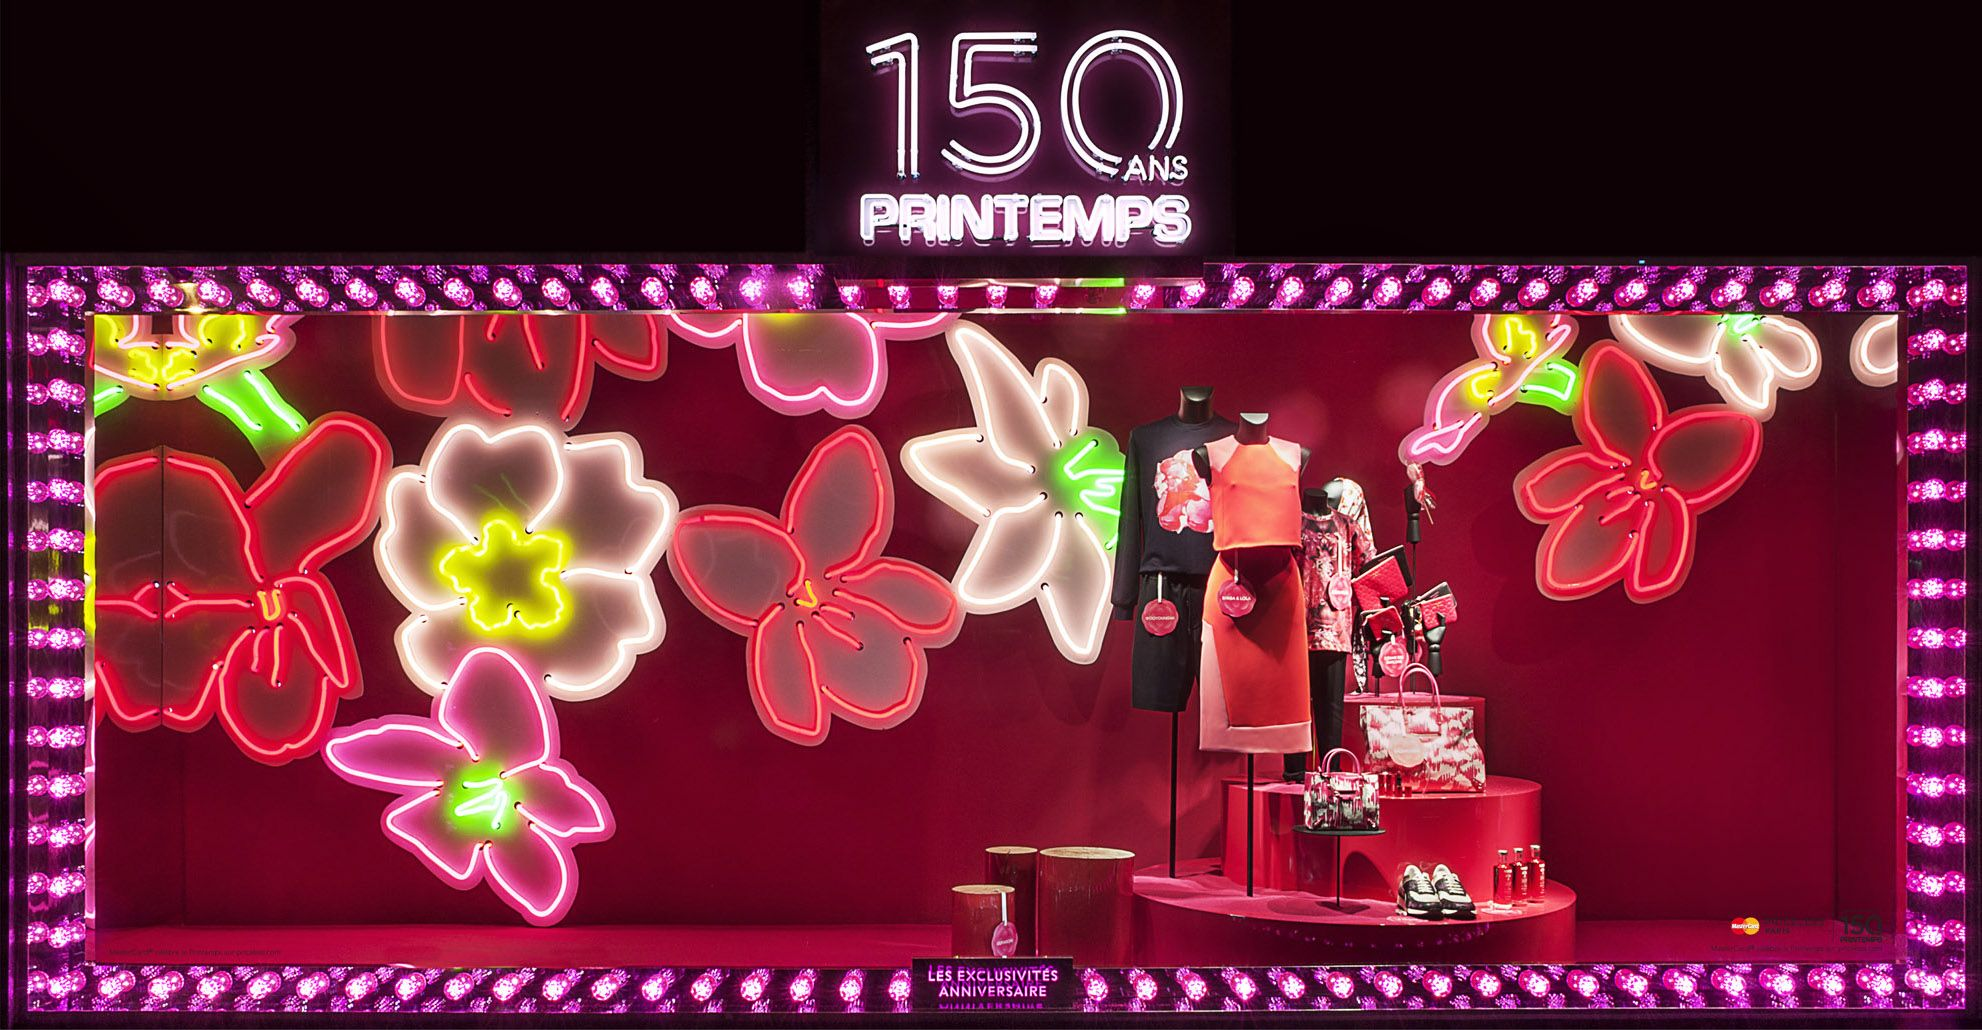 150th PRINTEMPS Anniversary. Paris Neon by Astrid Krogh 03.2015. photo@FrancisPeyrat 150.printemps.com